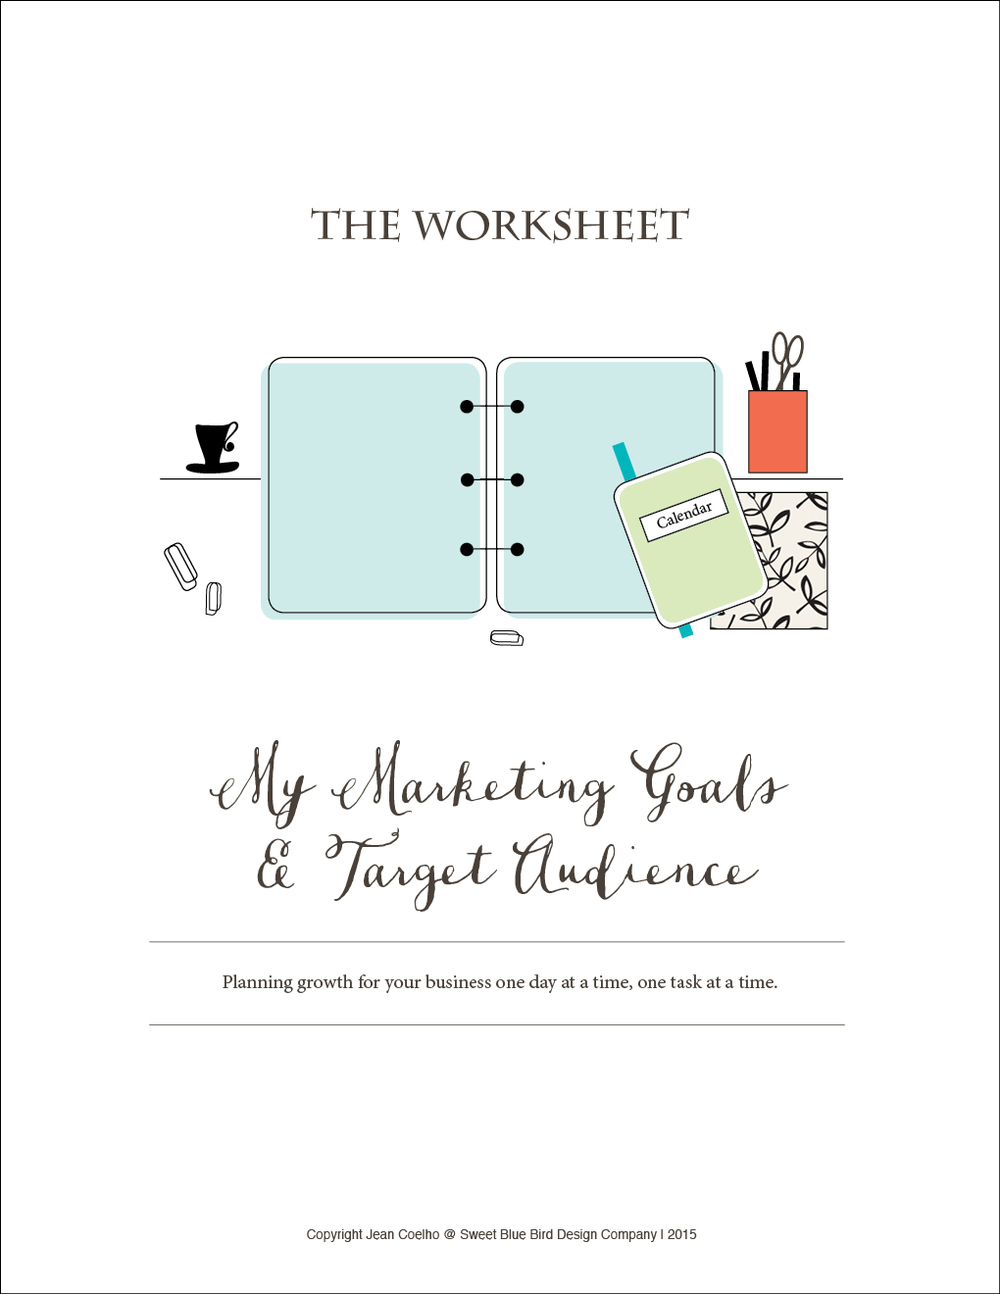 Marketing-and-target-audience-worksheet.jpg